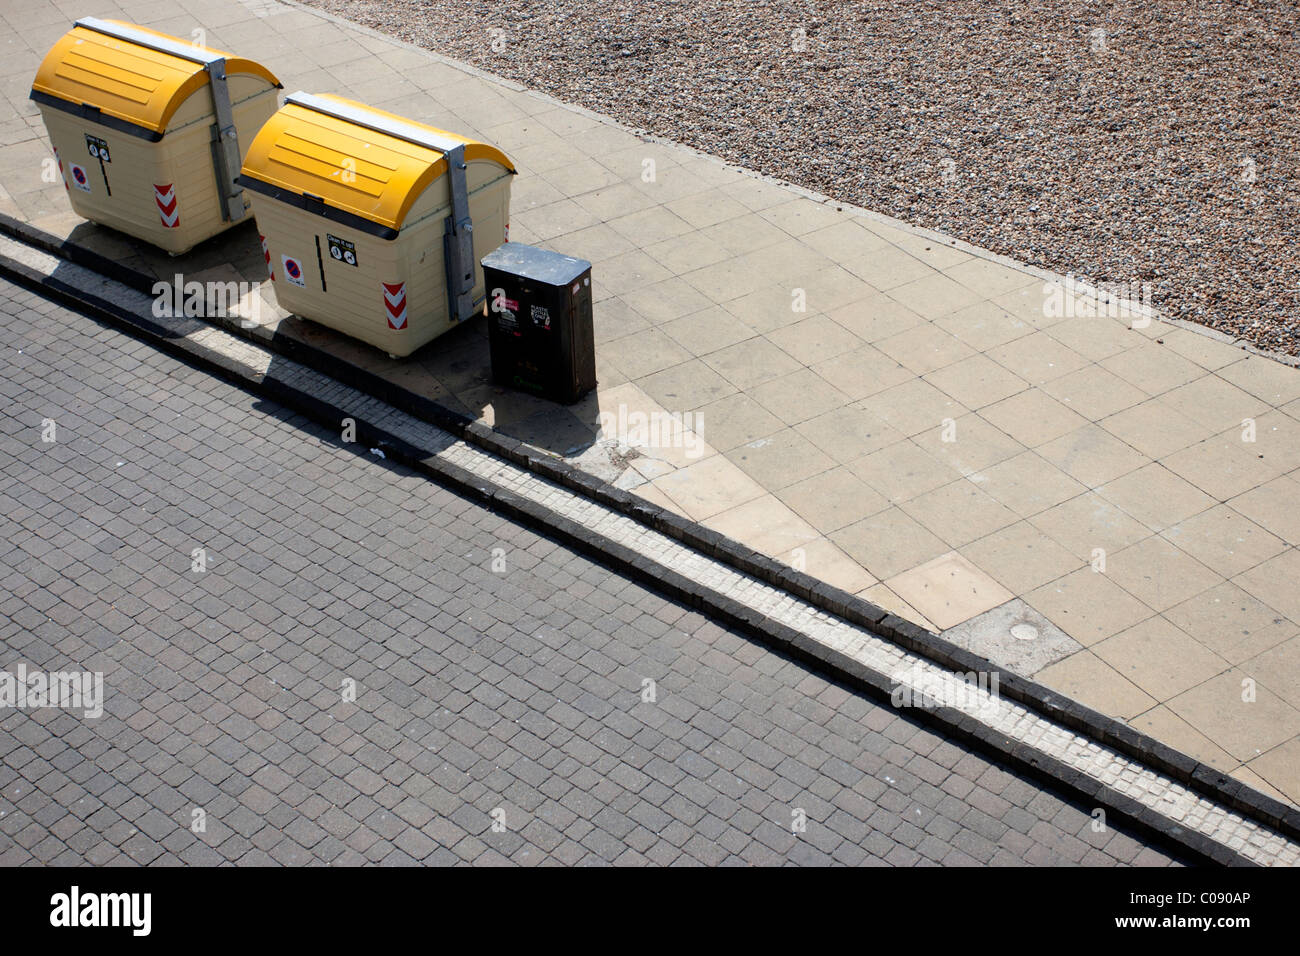 Two yellow public waste bins and a little black bin on the seafront in Brighton, East Sussex. - Stock Image